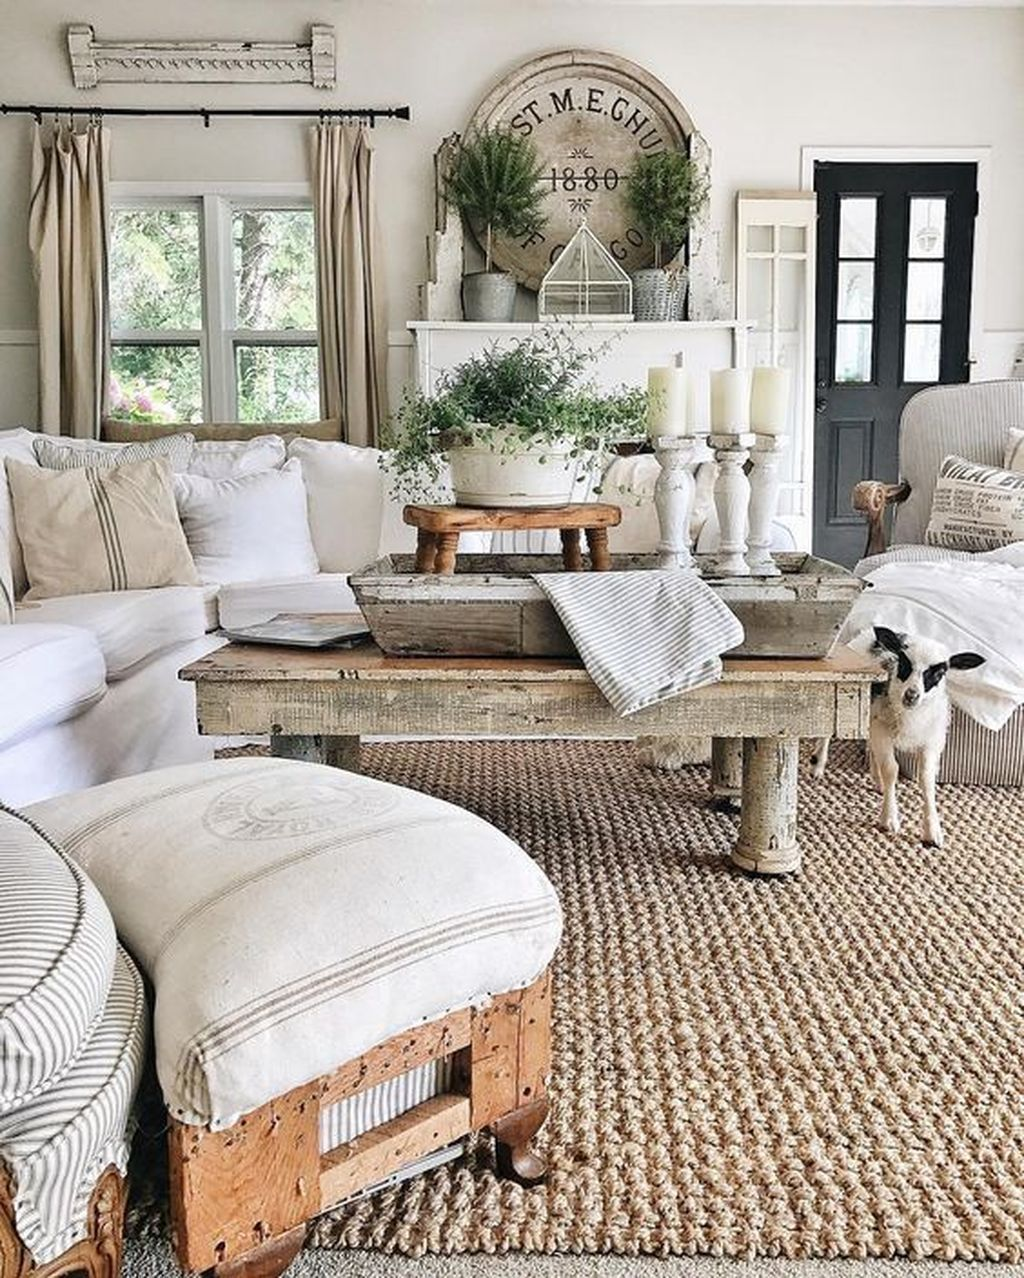 88 Enchanted Shabby Chic Living Room Decoration Ideas  Shabby Best Chic Living Room Designs Design Inspiration